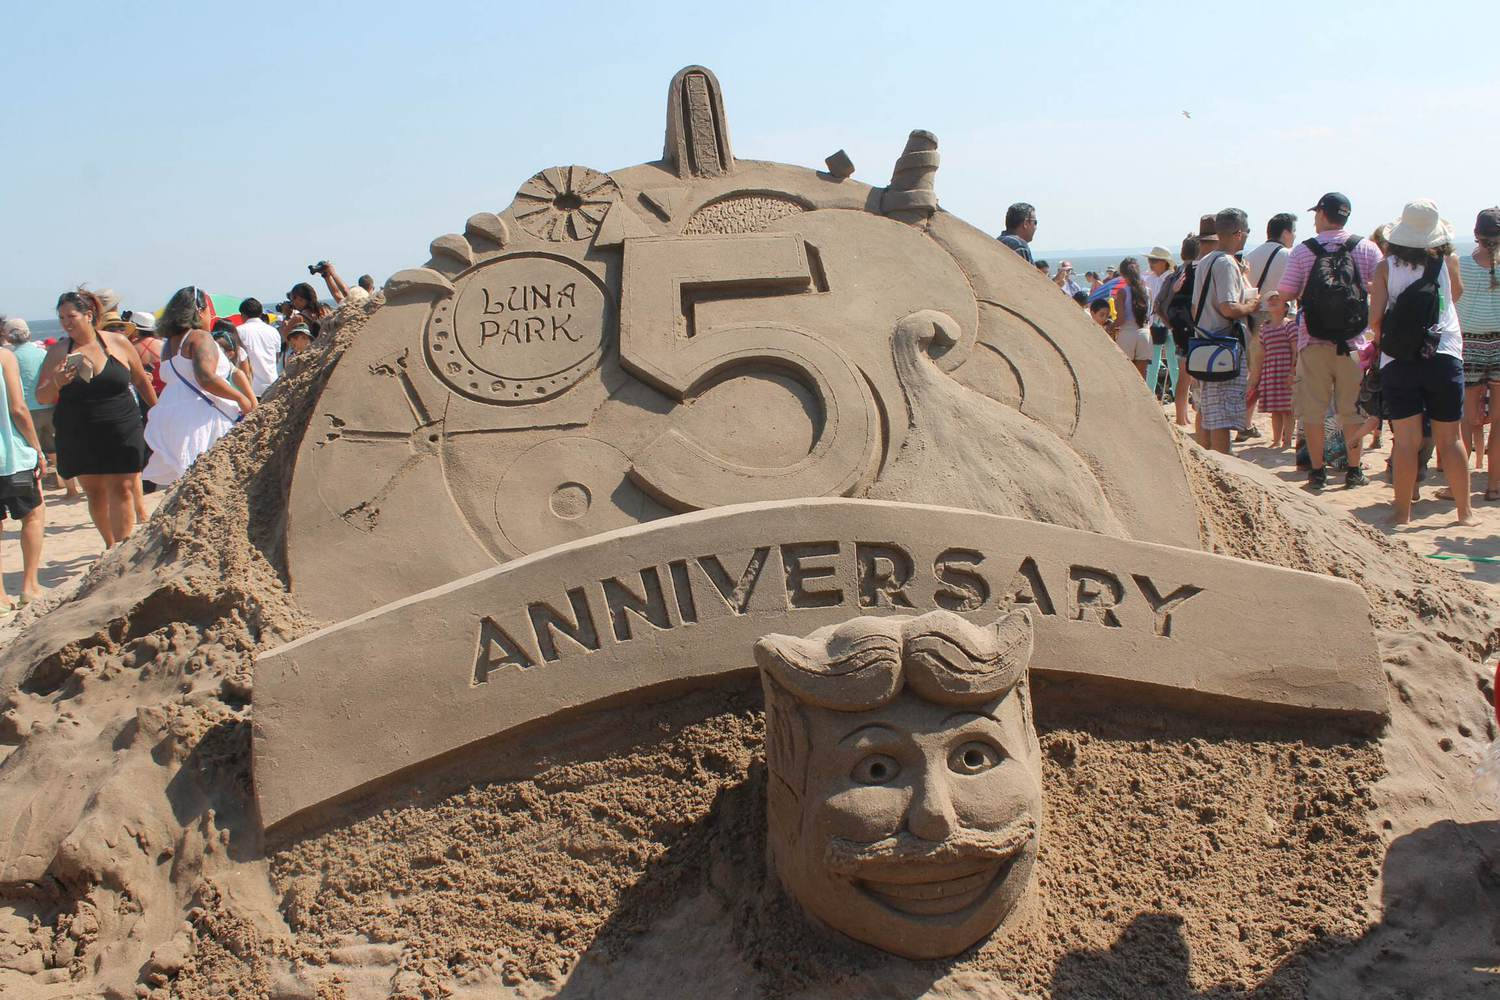 The Coney Island Sand Sculpting Contest kicked off Saturday.